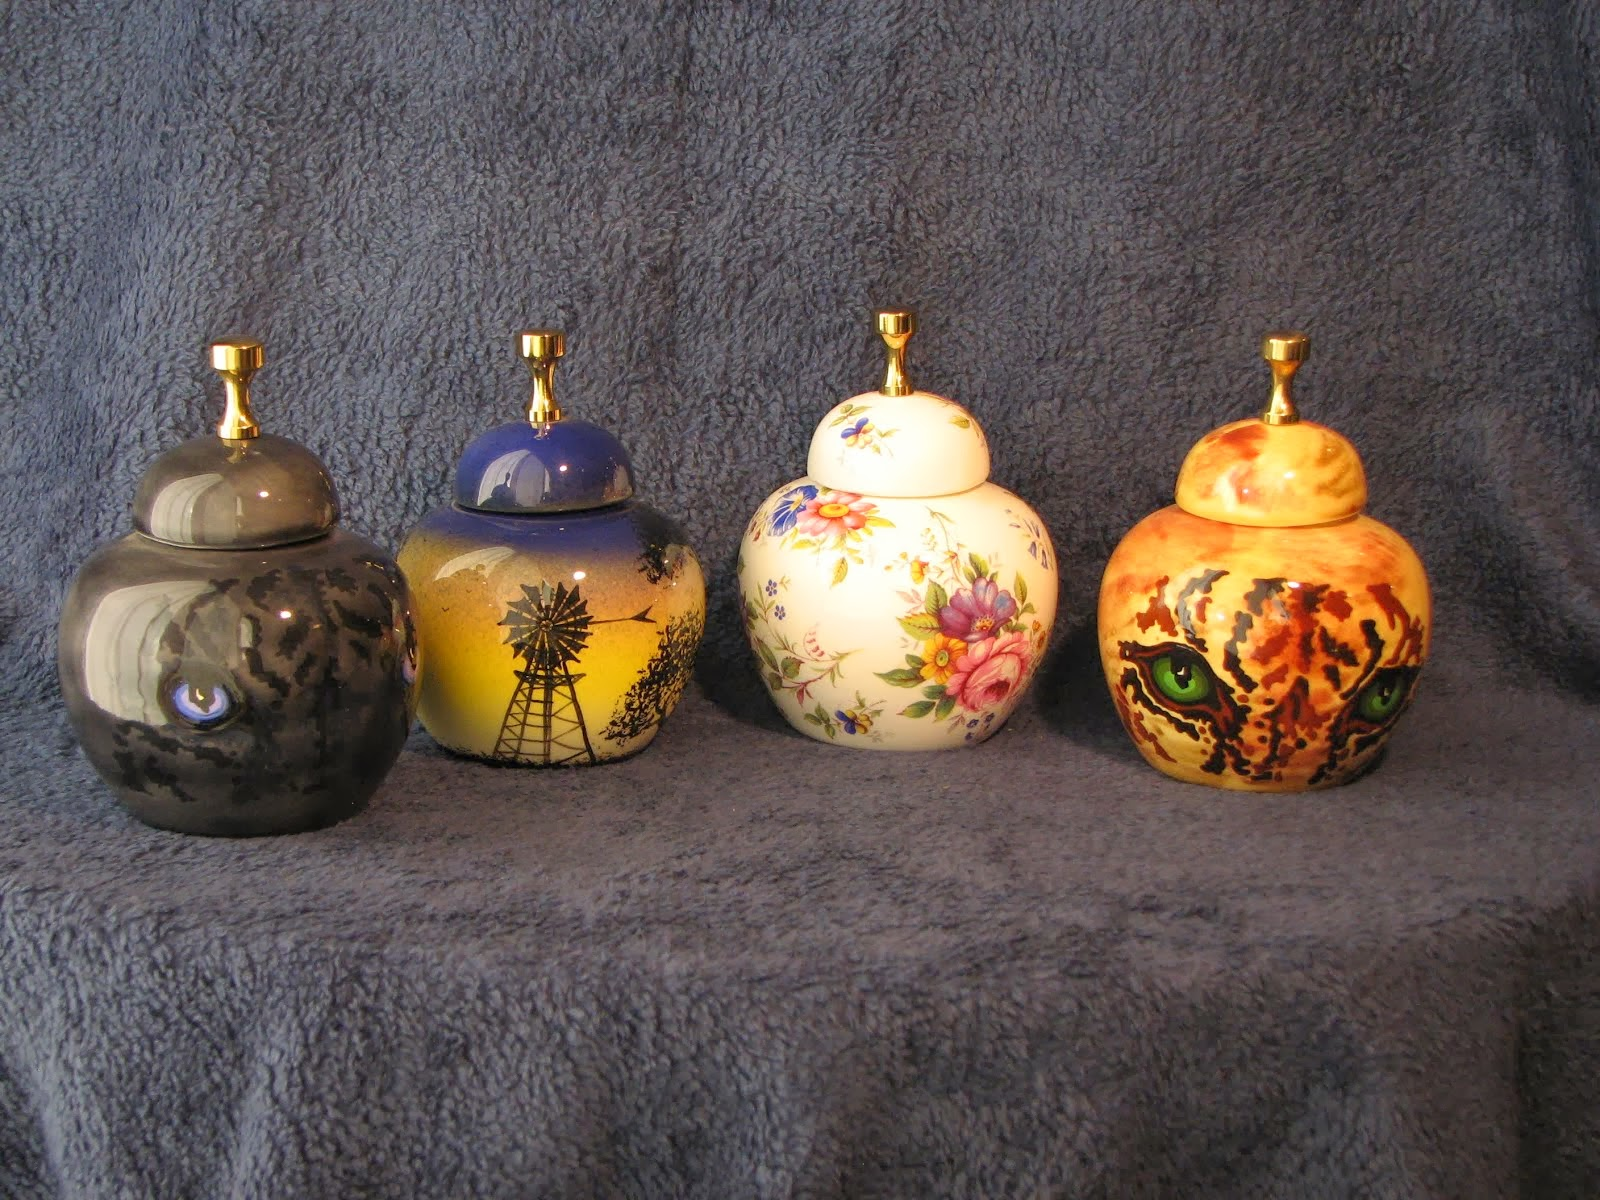 Memorial Urns including Pet Urns